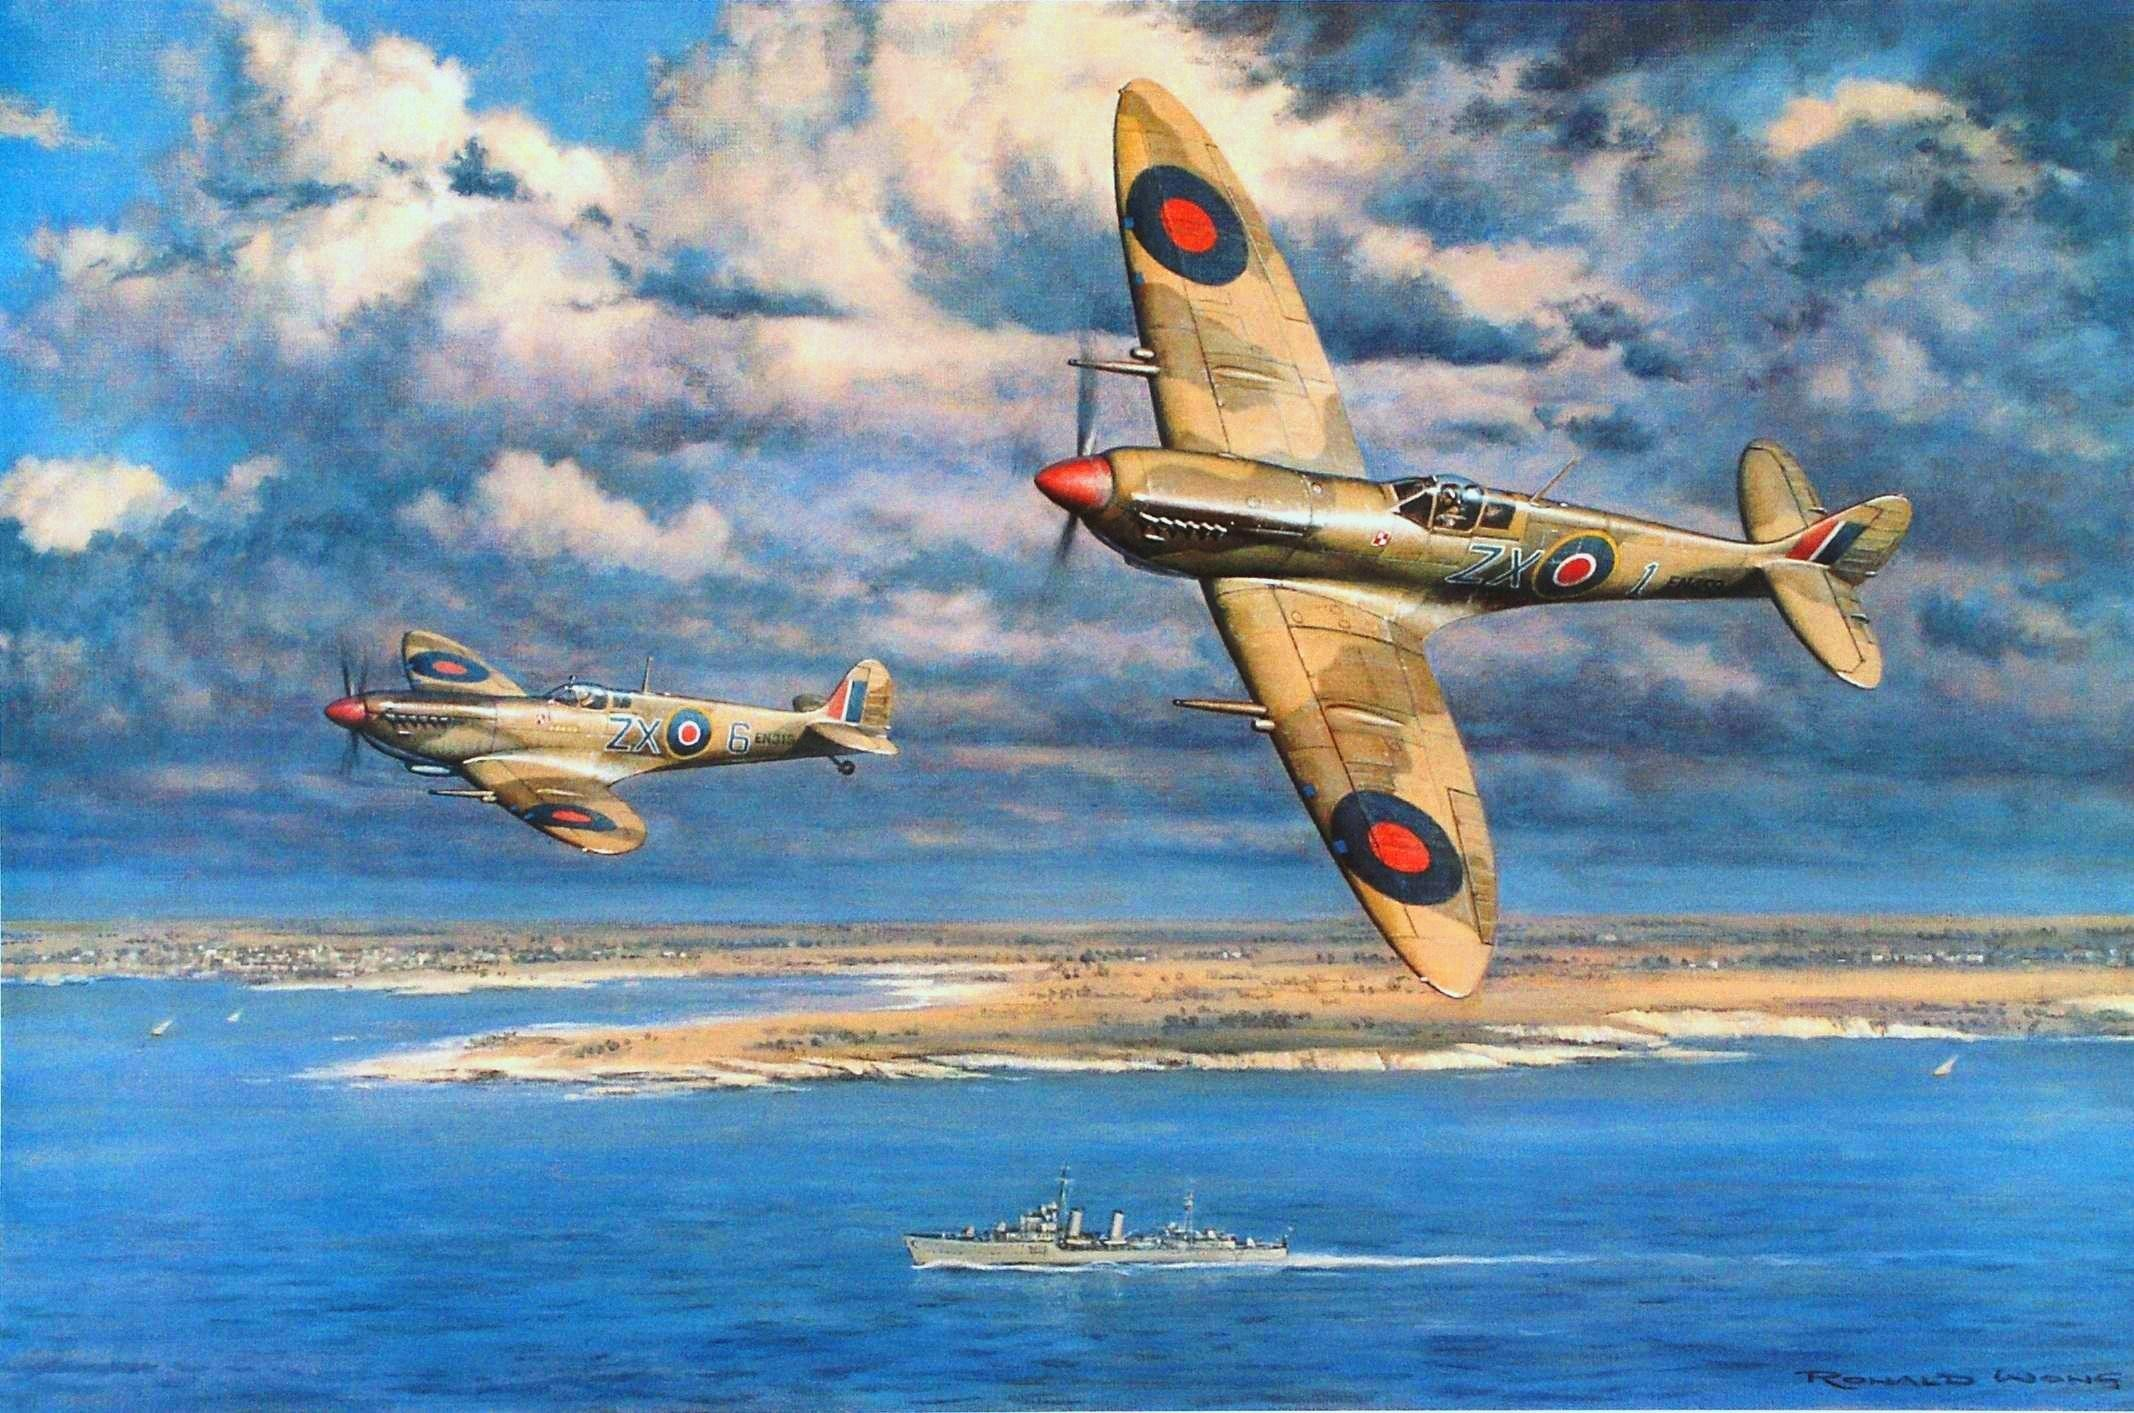 2134x1413 World War II, Military, Aircraft, Military Aircraft, Airplane, Spitfire,  Supermarine